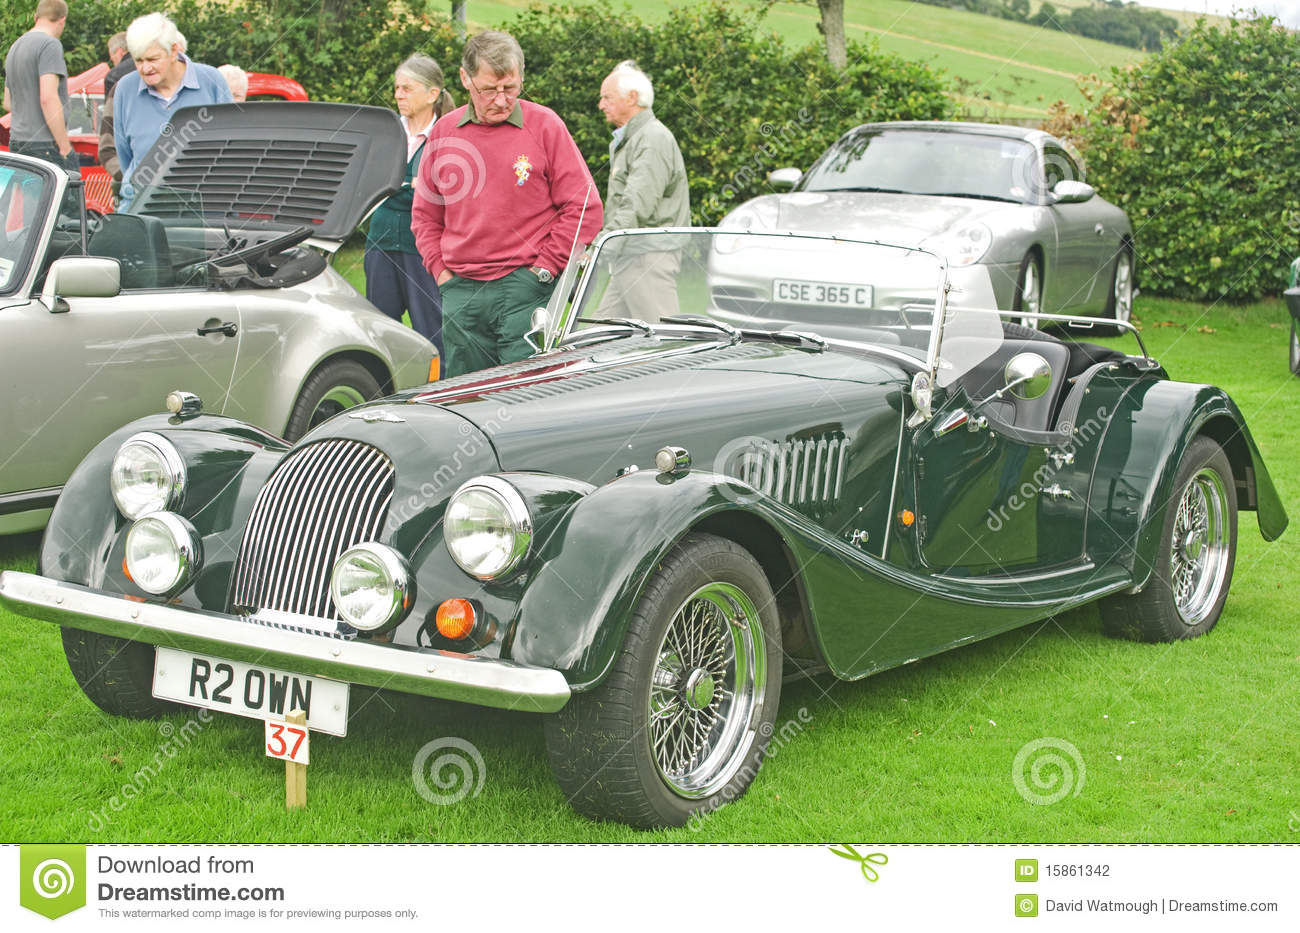 An image of a Morgan Classic car displayed at the Fortrose Classic Car